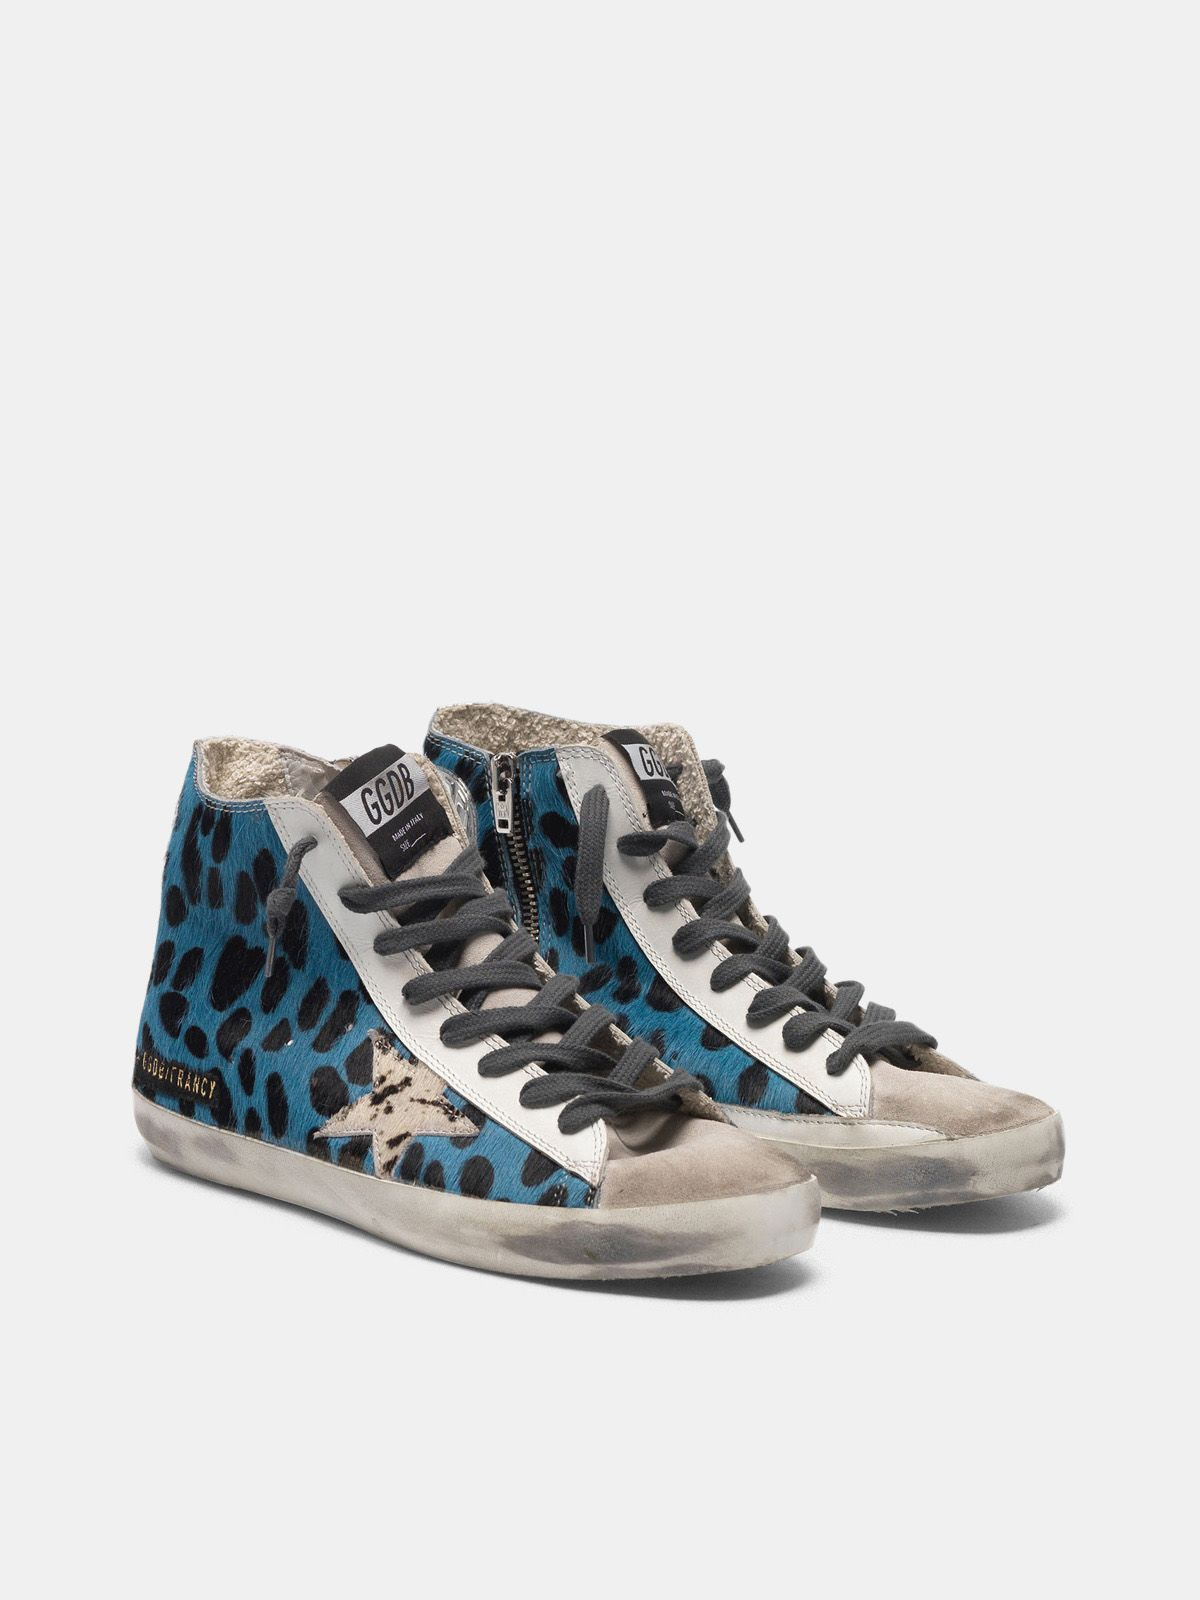 Golden Goose - Francy sneakers in blue leopard print pony skin in